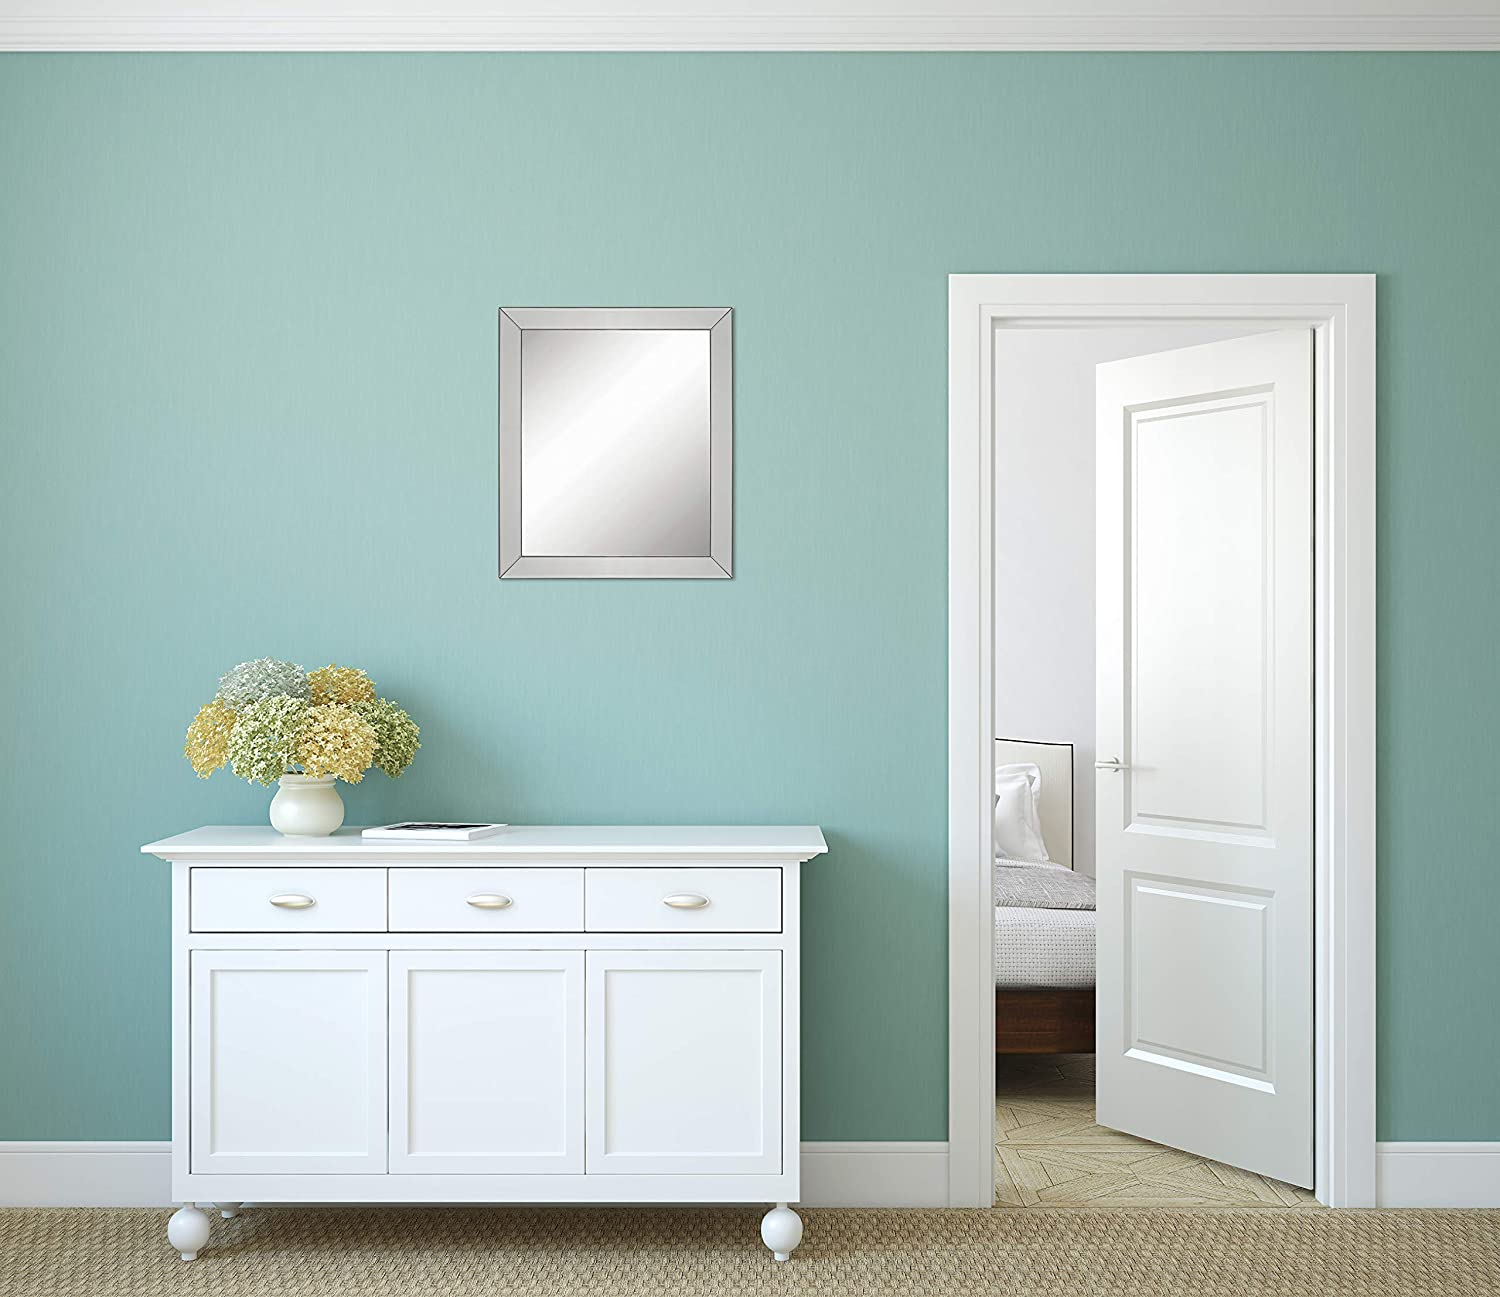 Entryway Full Size: 24.5 x 28.5 Bedroom or Bathroom Mirror Rectangle Hangs Horizontal or Vertical Large Luxury Elegant Framed Wall-Mounted Mirror with Angled Beveled Mirror Frame Hudson Frames Vanity